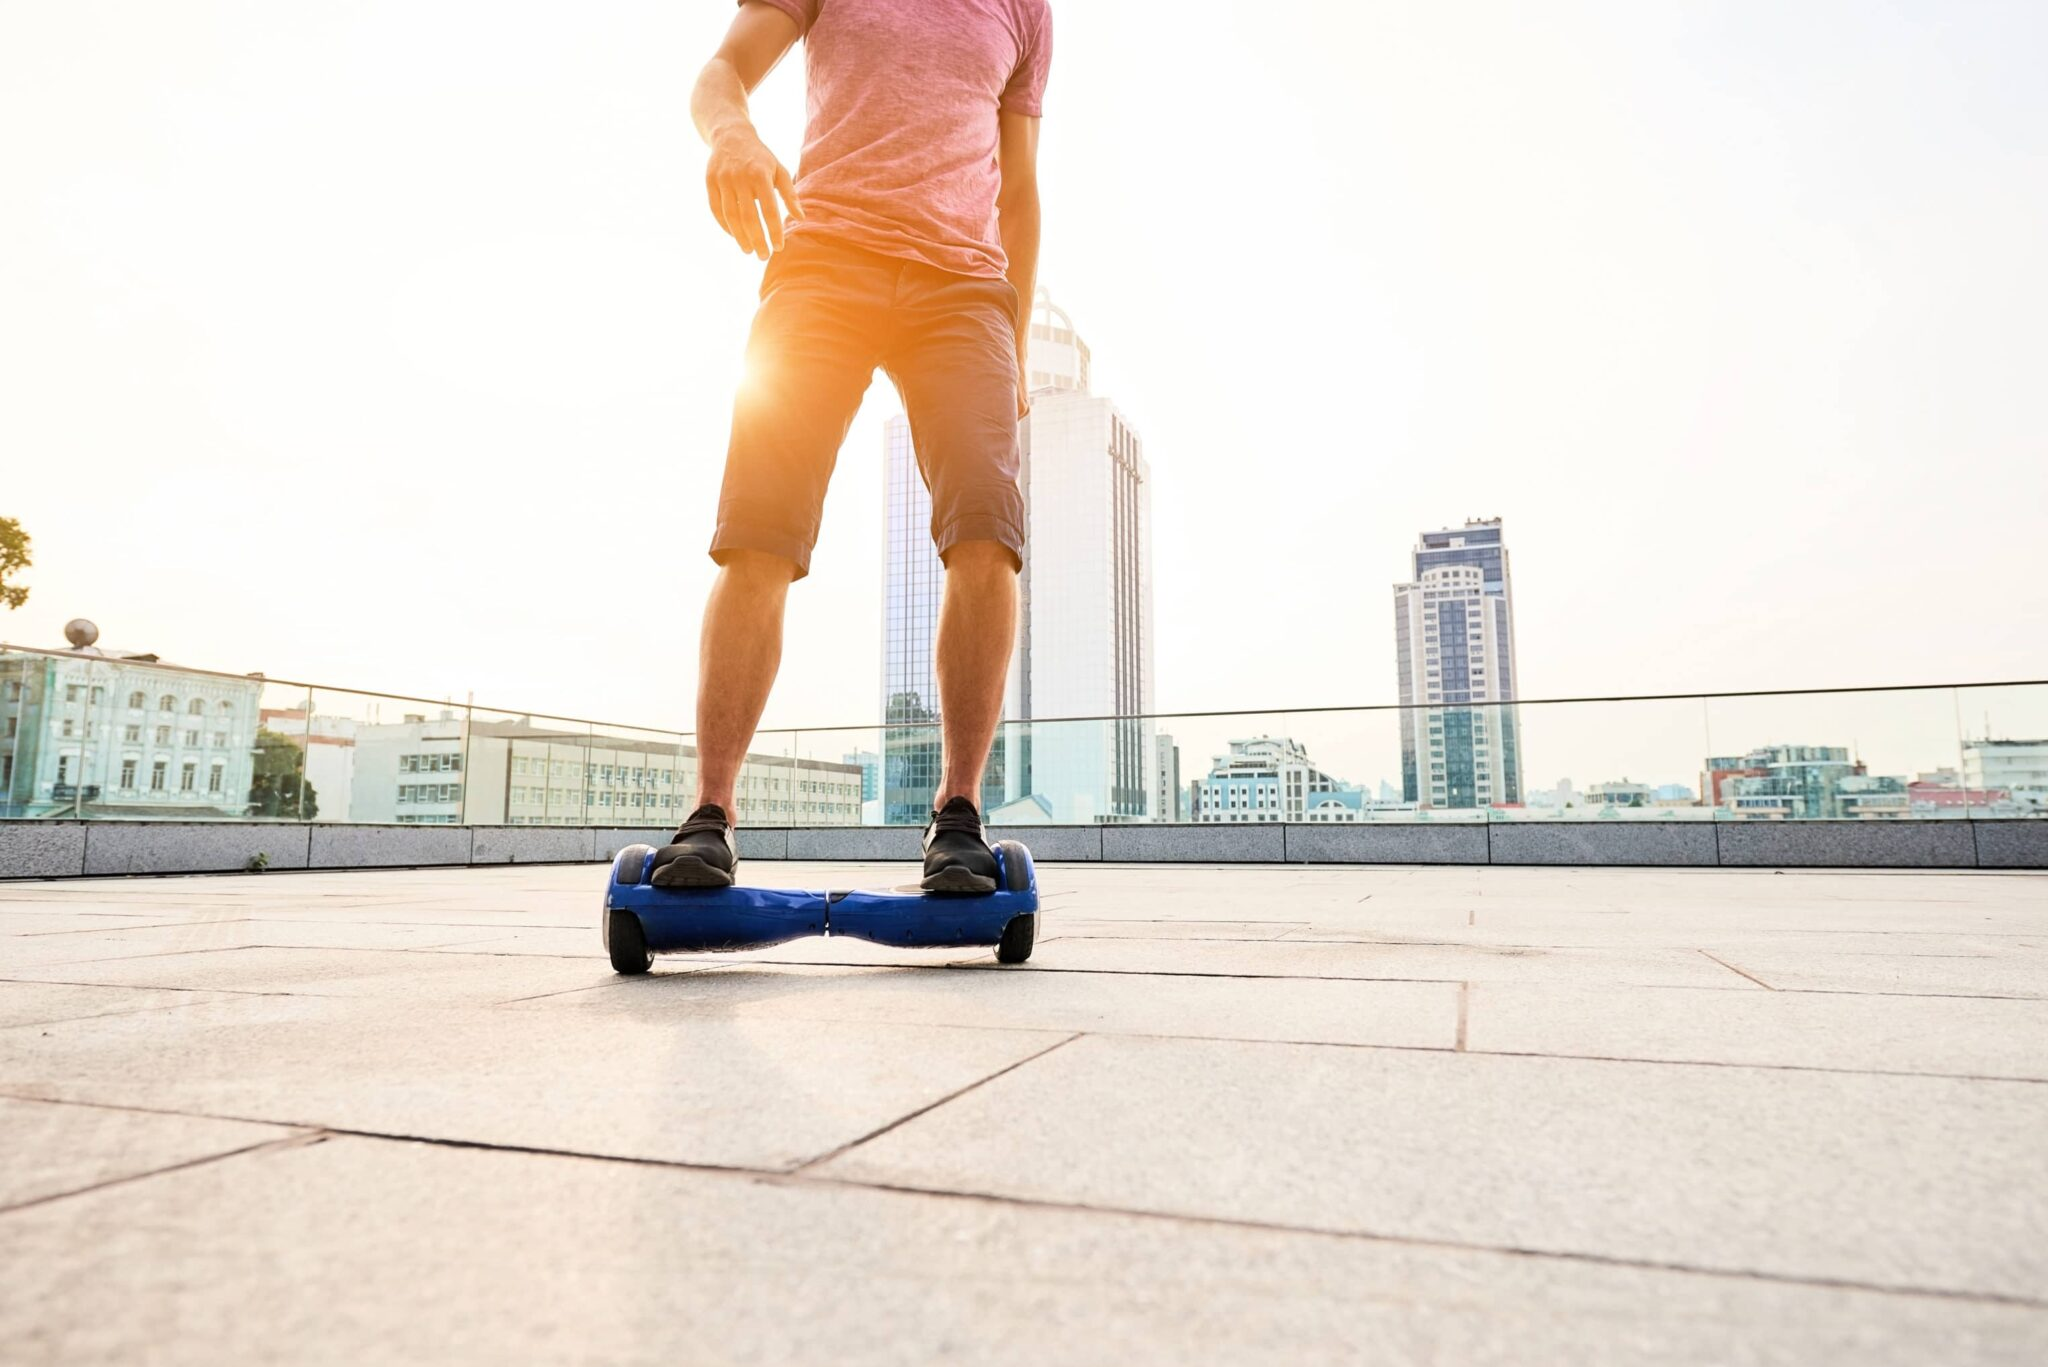 Young man riding on a hoverboard on the roof of a building with high-rise buildings shown in the background